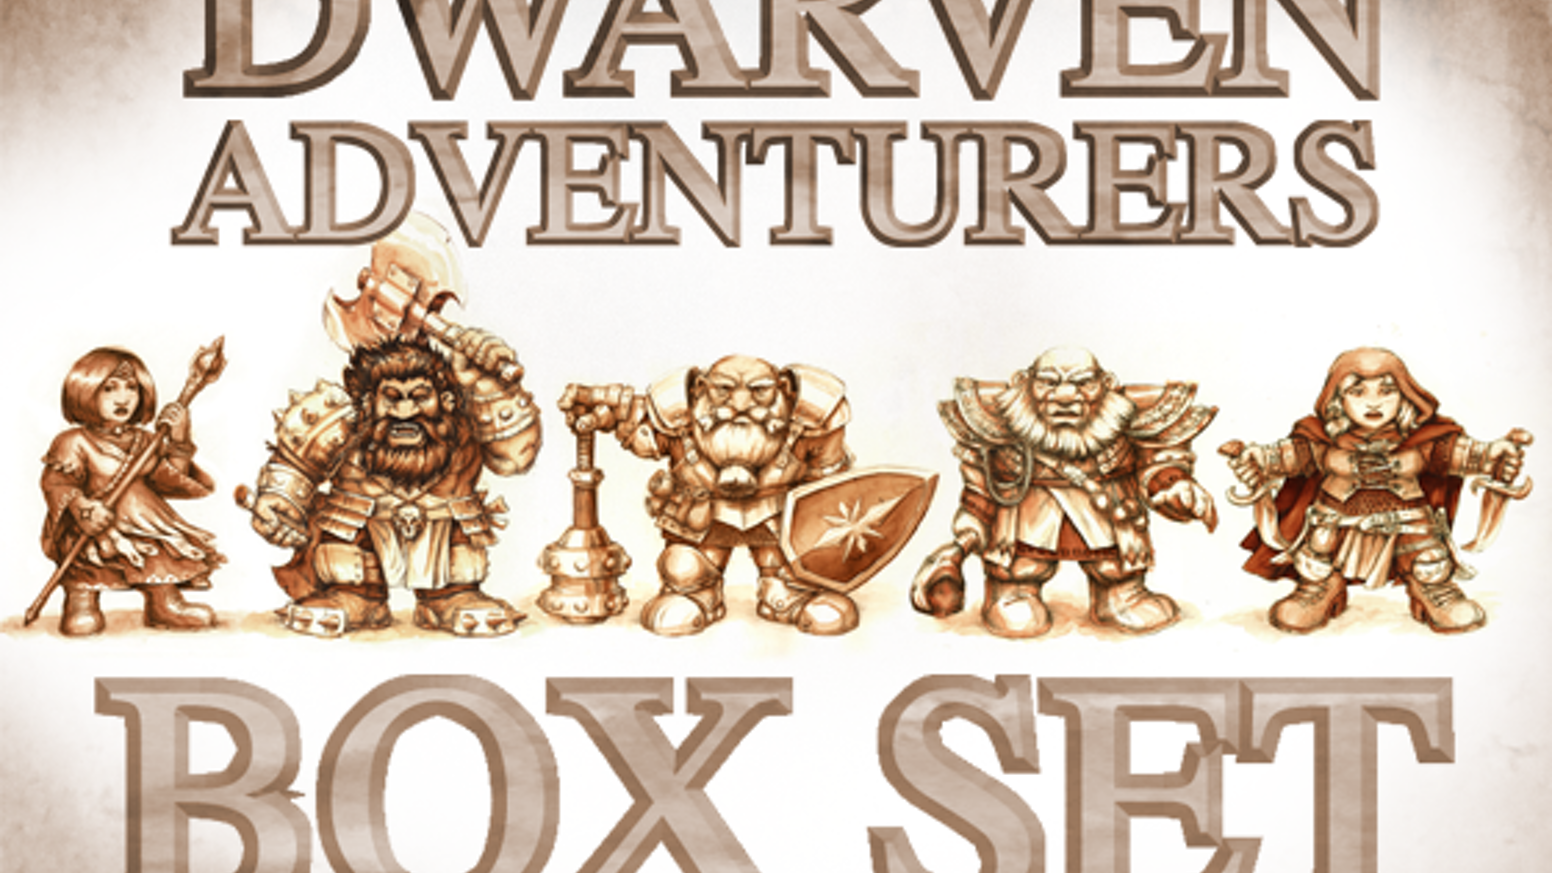 The Dwarven Adventurers Project will produce a set of dwarven hero miniatures for dungeon-crawling, RPGs and 28mm tabletop wargames.